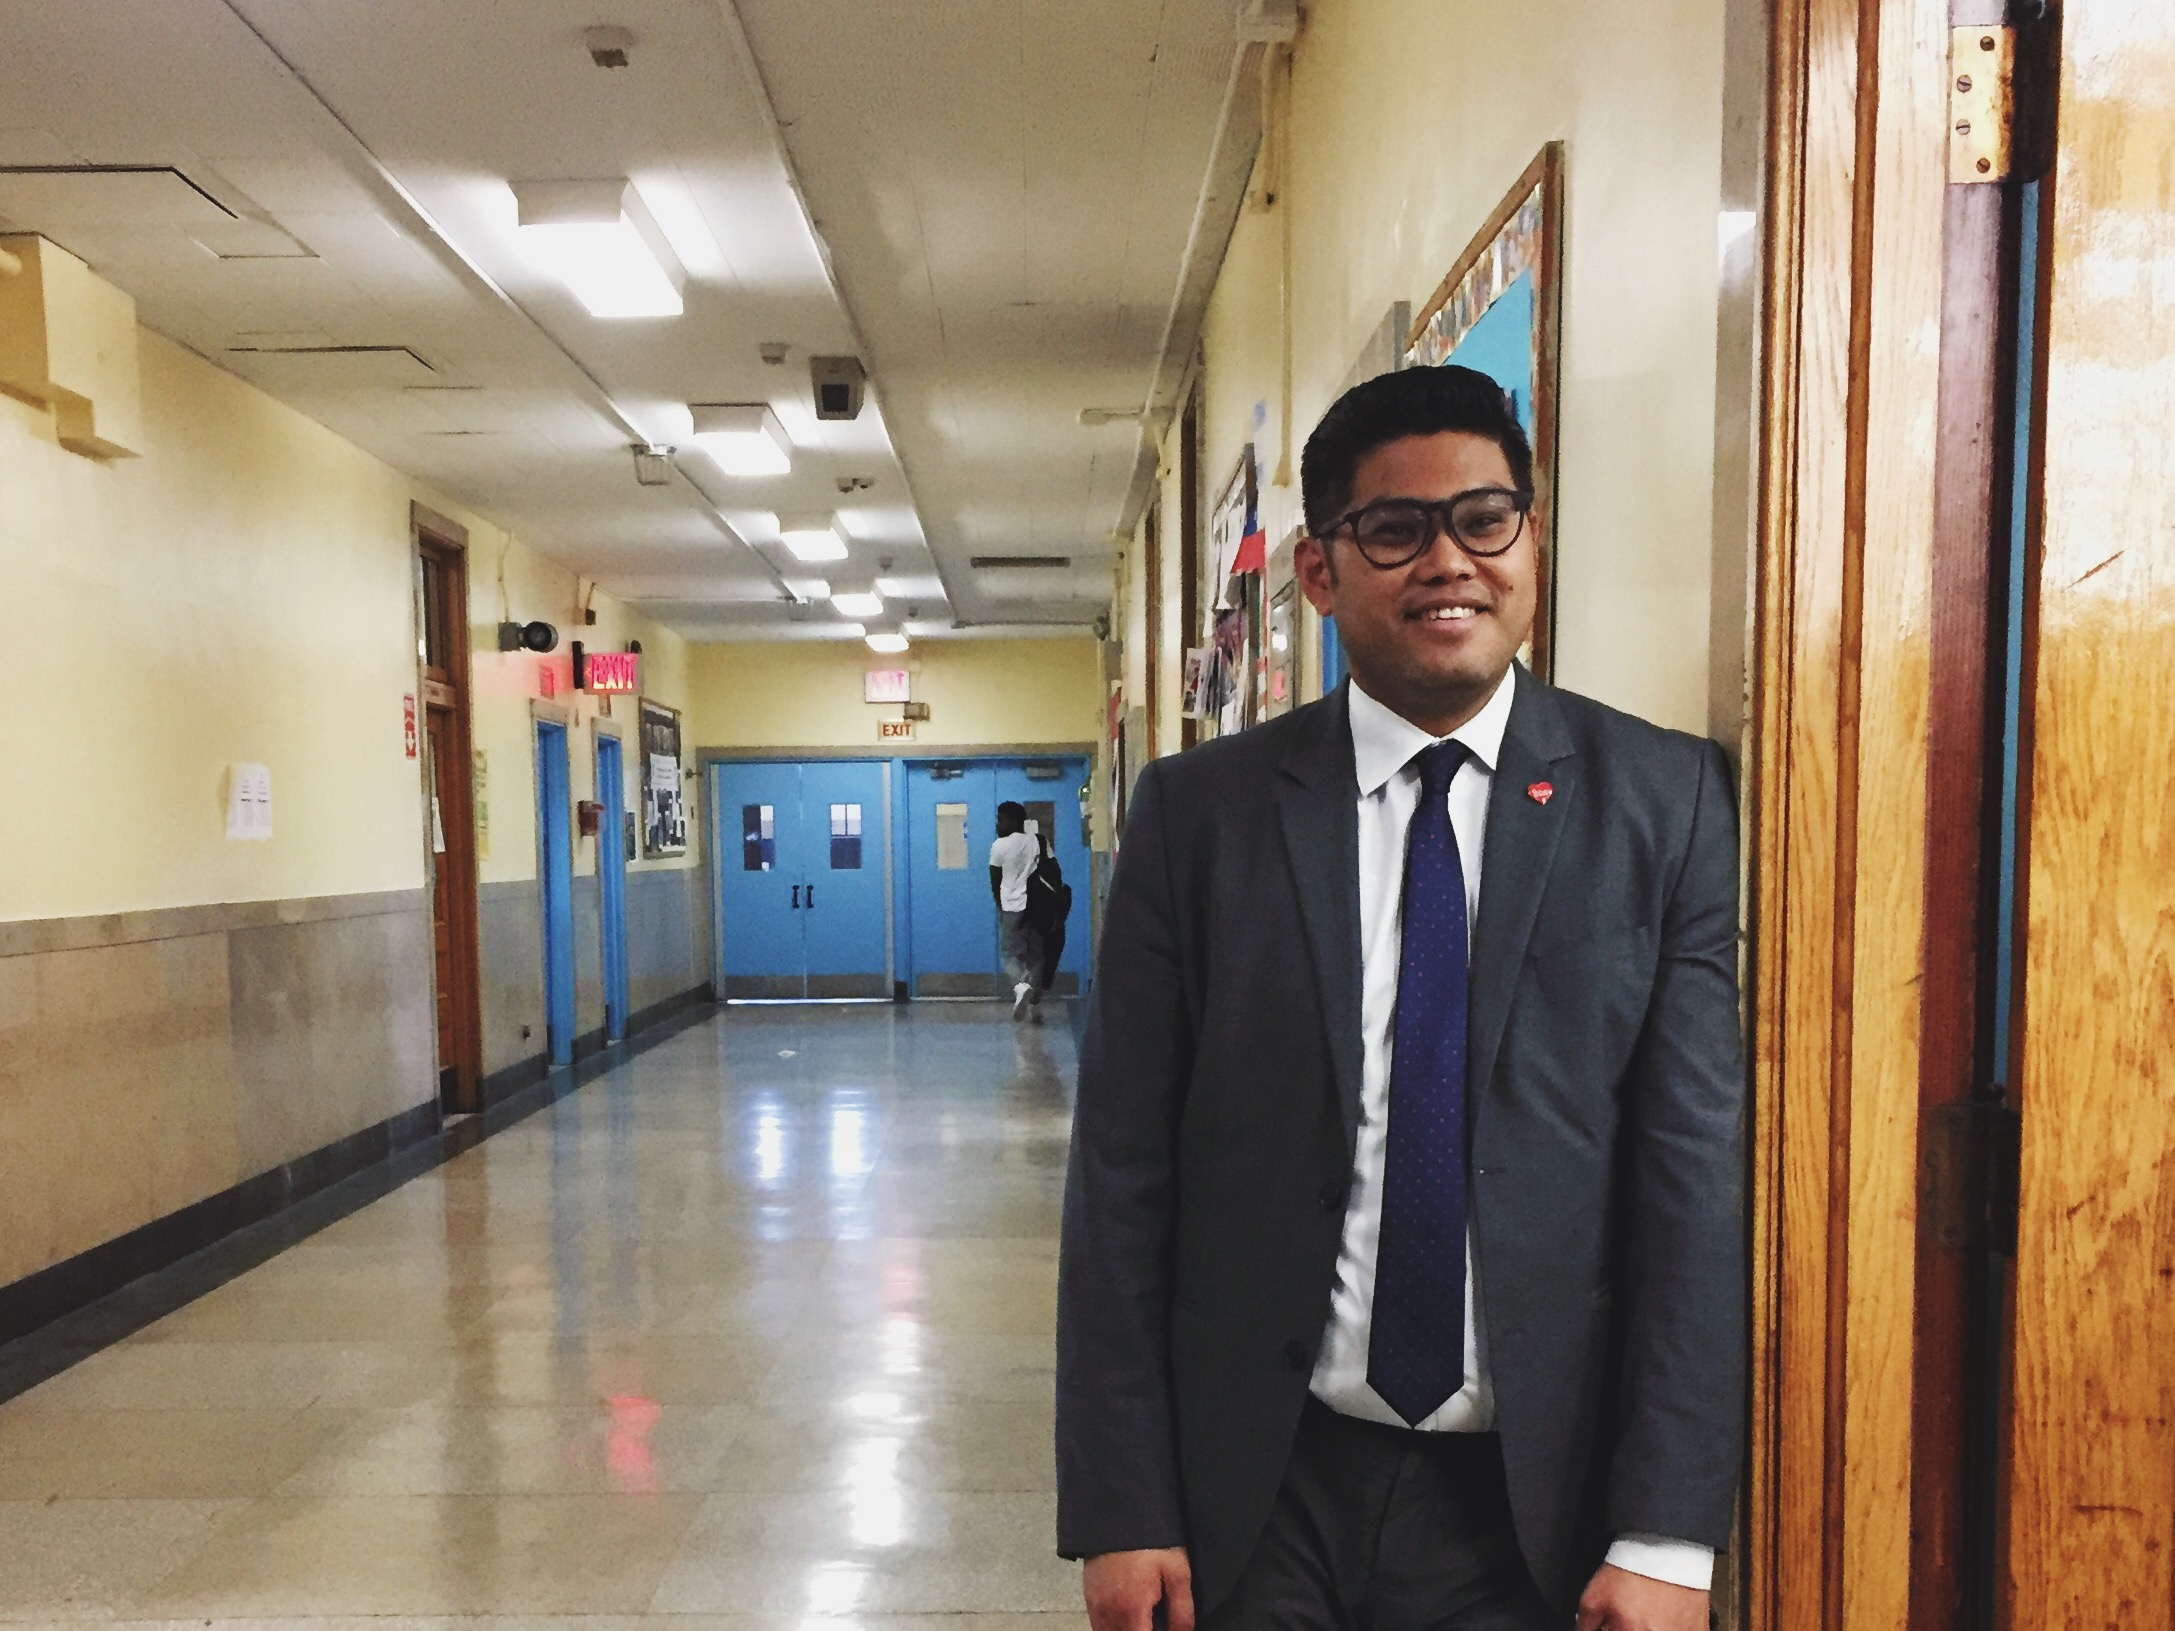 How a principal who 'never wanted to be a leader' is transforming a Queens high school - Chalkbeat.com, April 2017